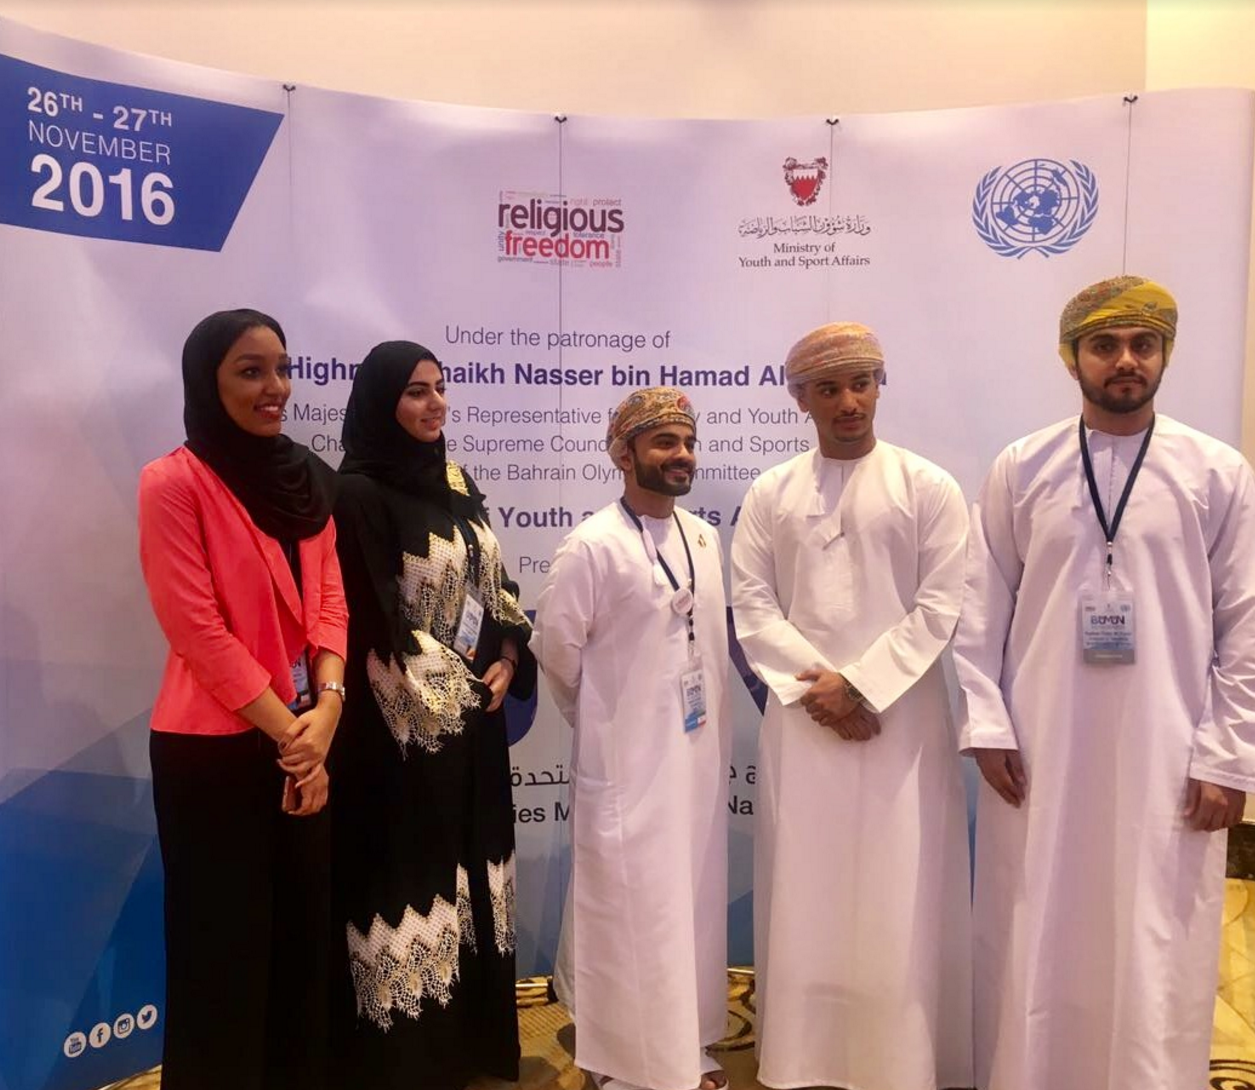 Omani participants pose for a group picture during BUMUN 2016 in Bahrain.